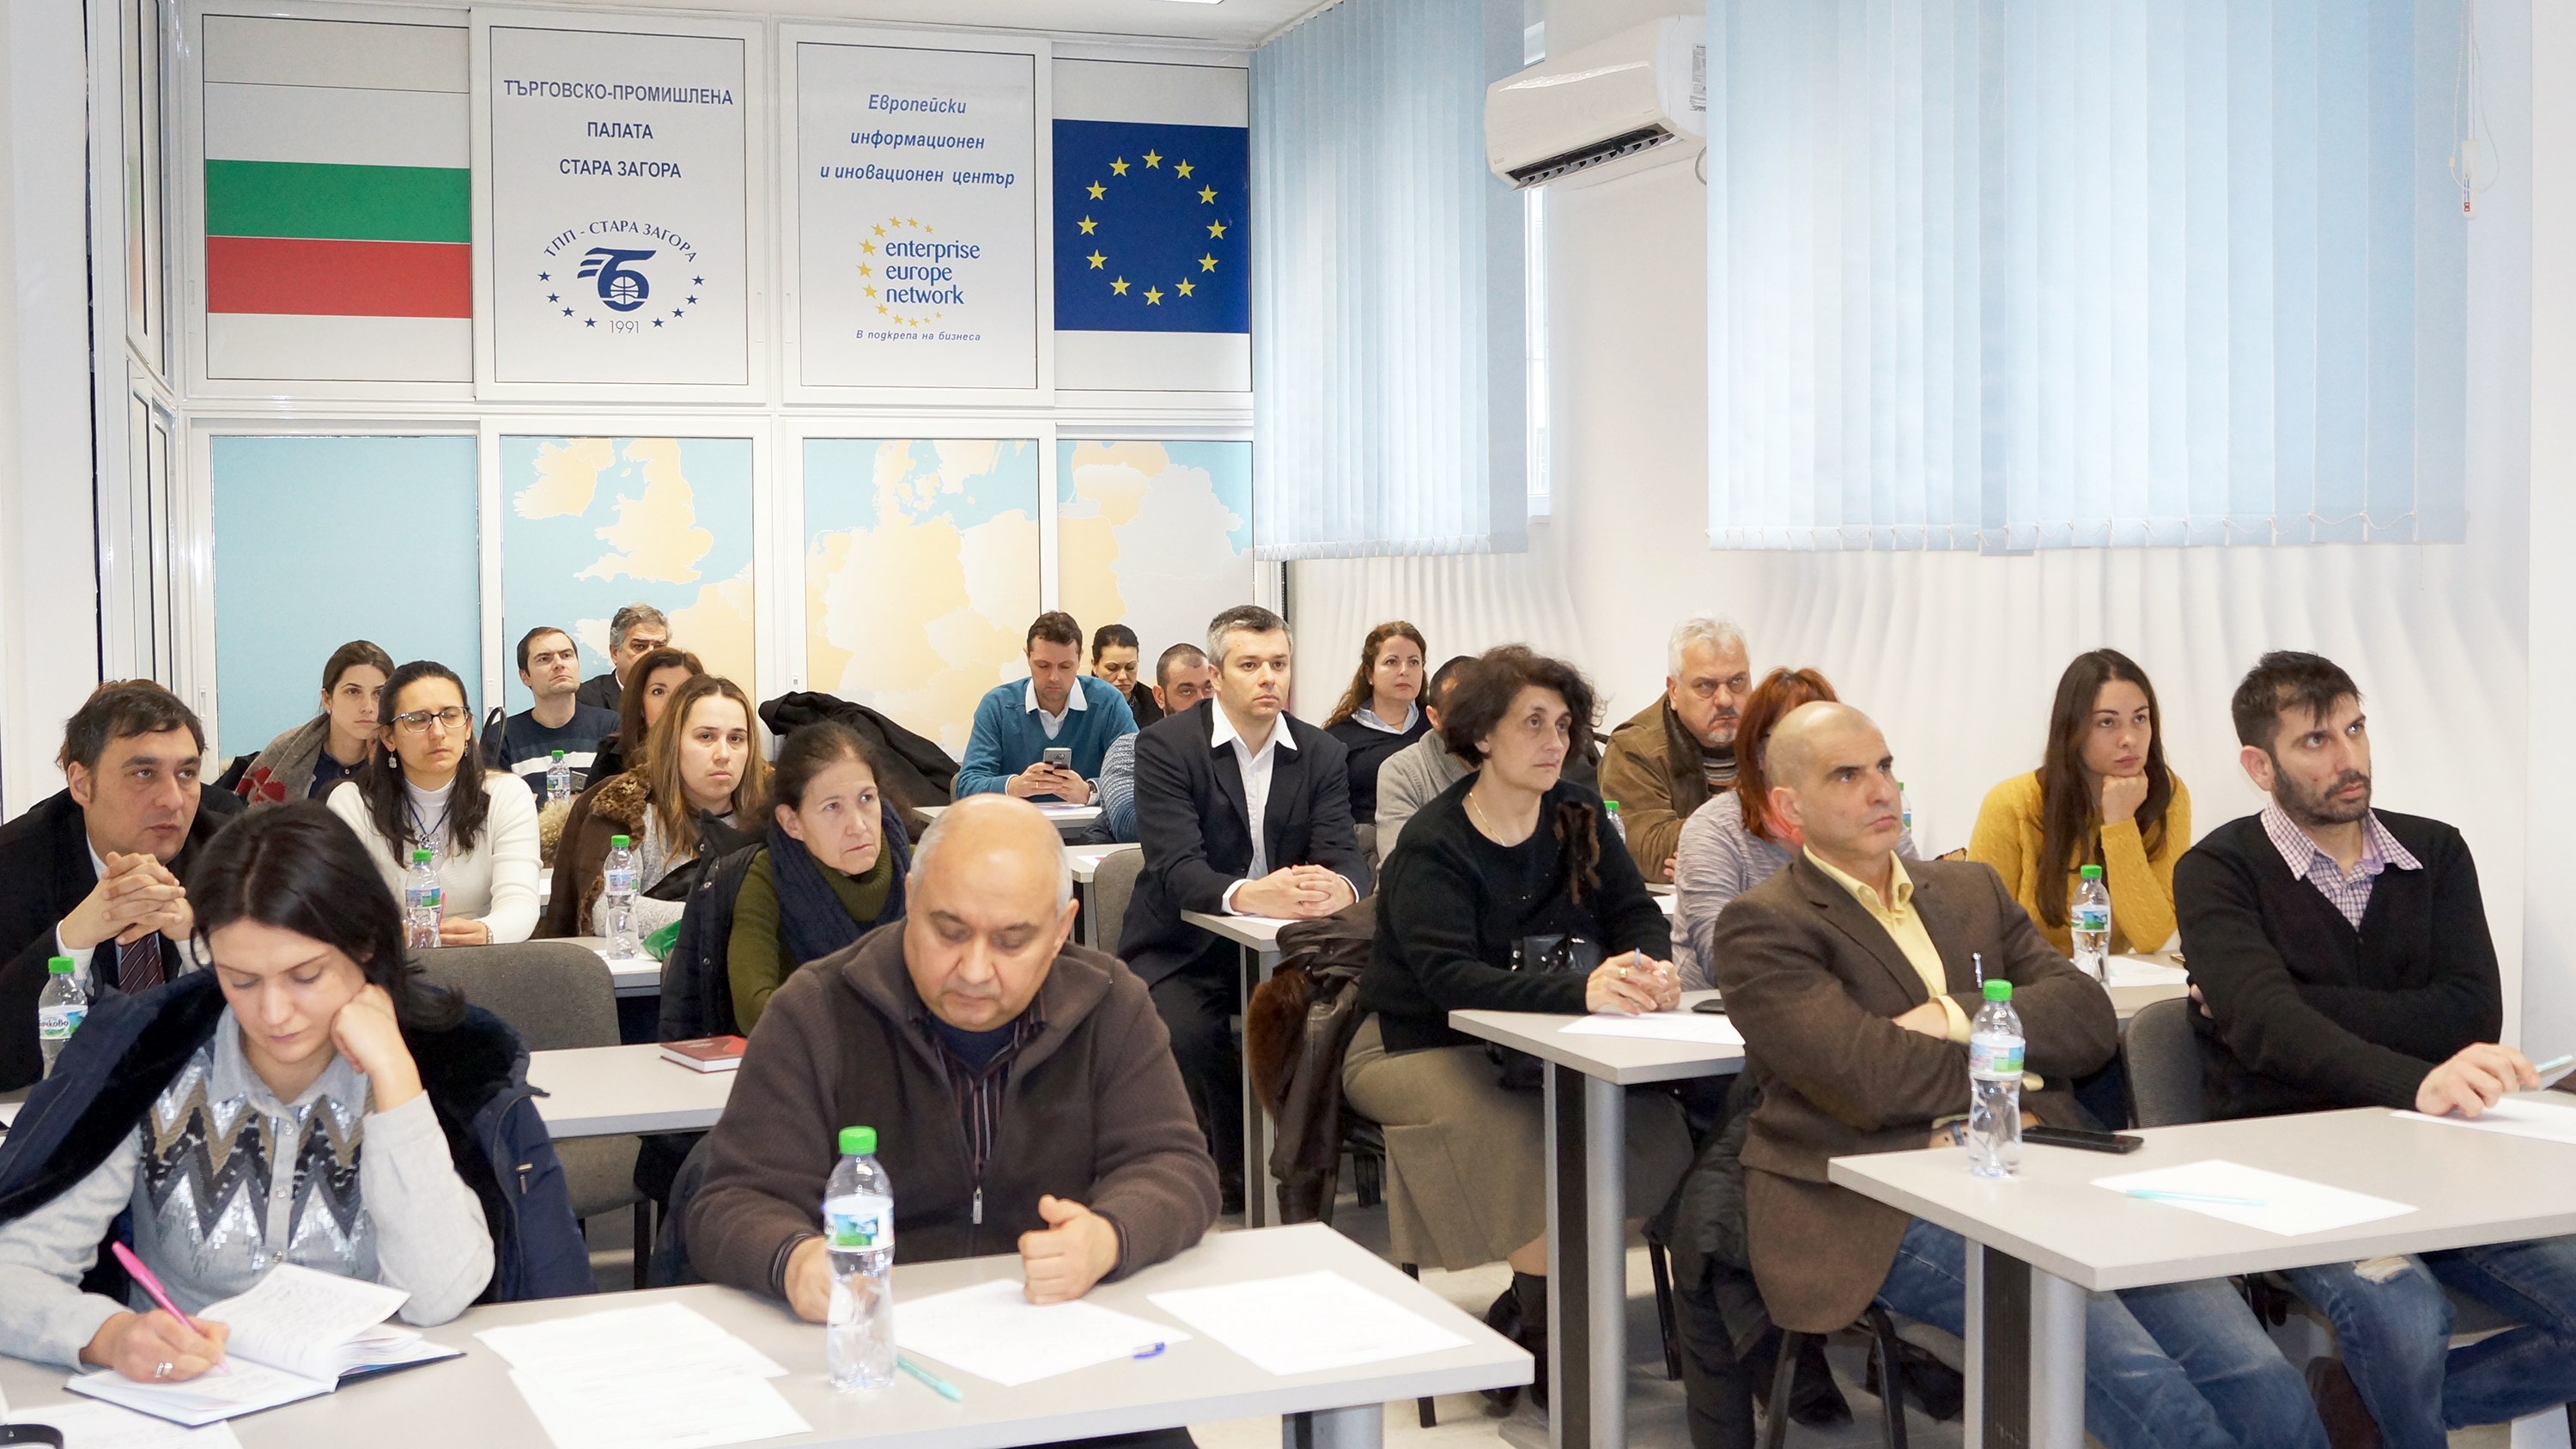 Business Breakfast took place in the city of Stara Zagora